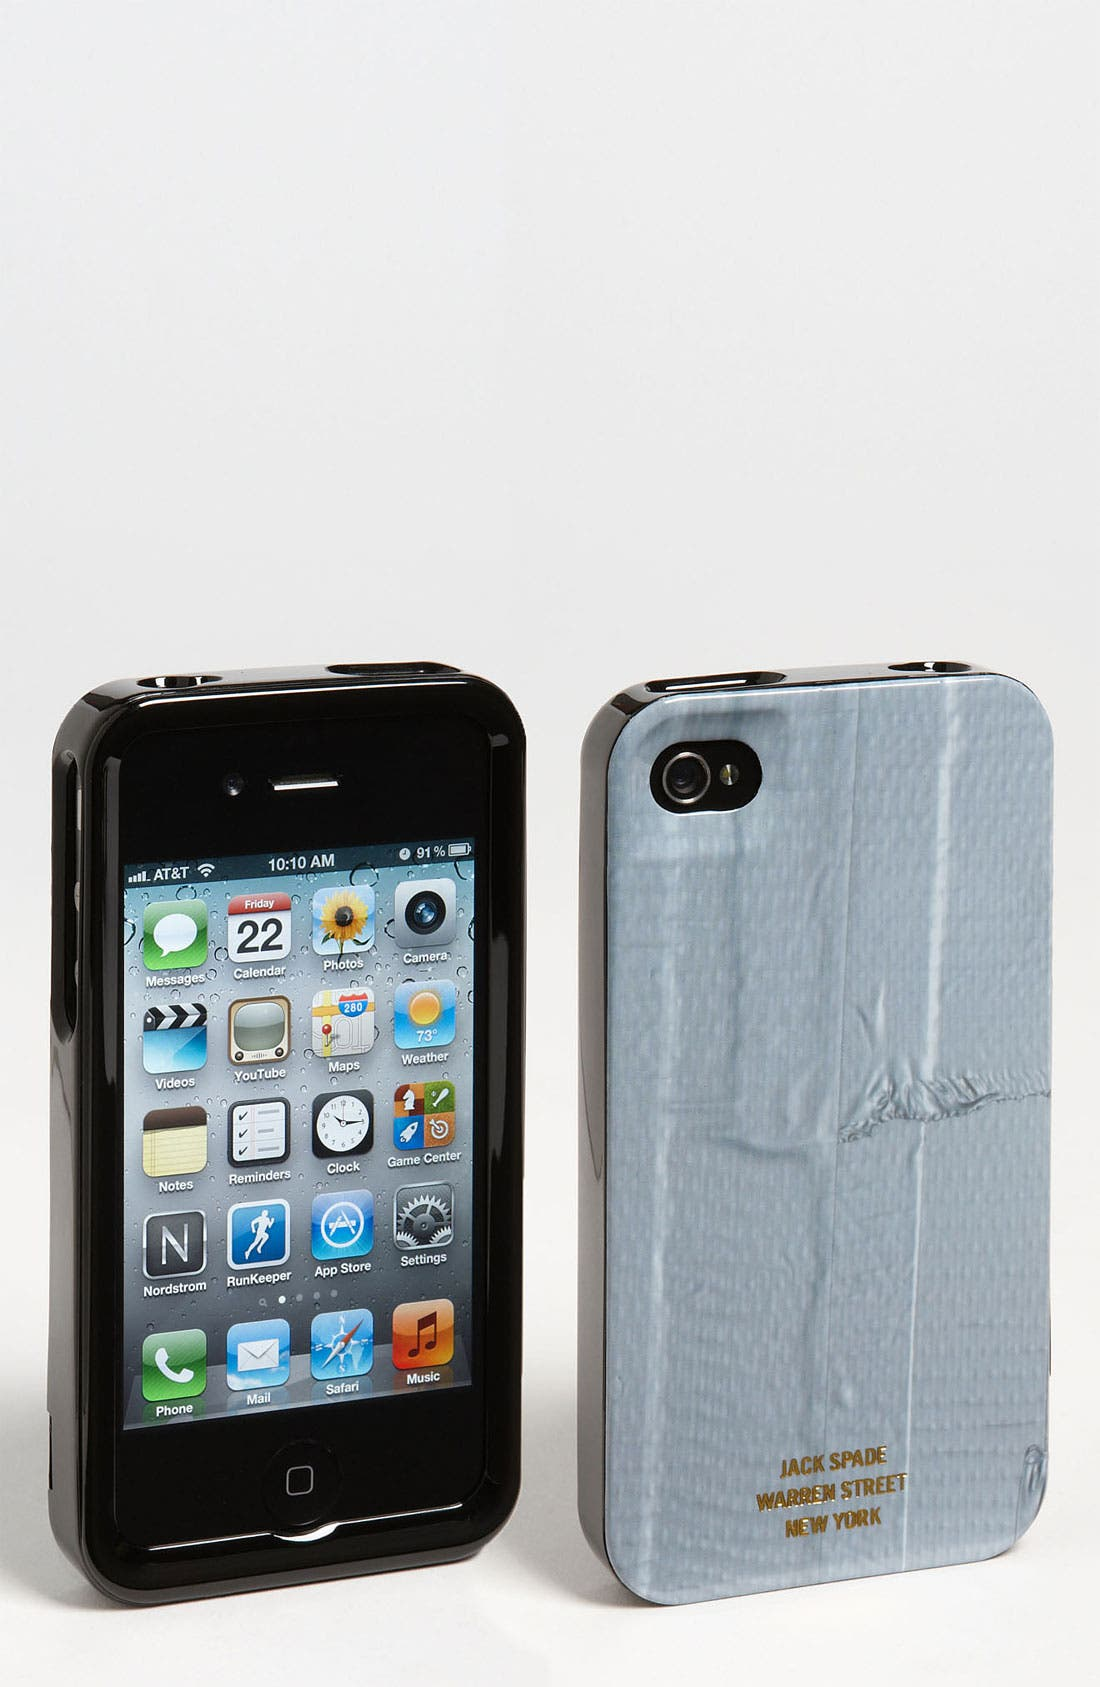 Alternate Image 1 Selected - Jack Spade 'Duct Tape' iPhone 4 & 4S Case